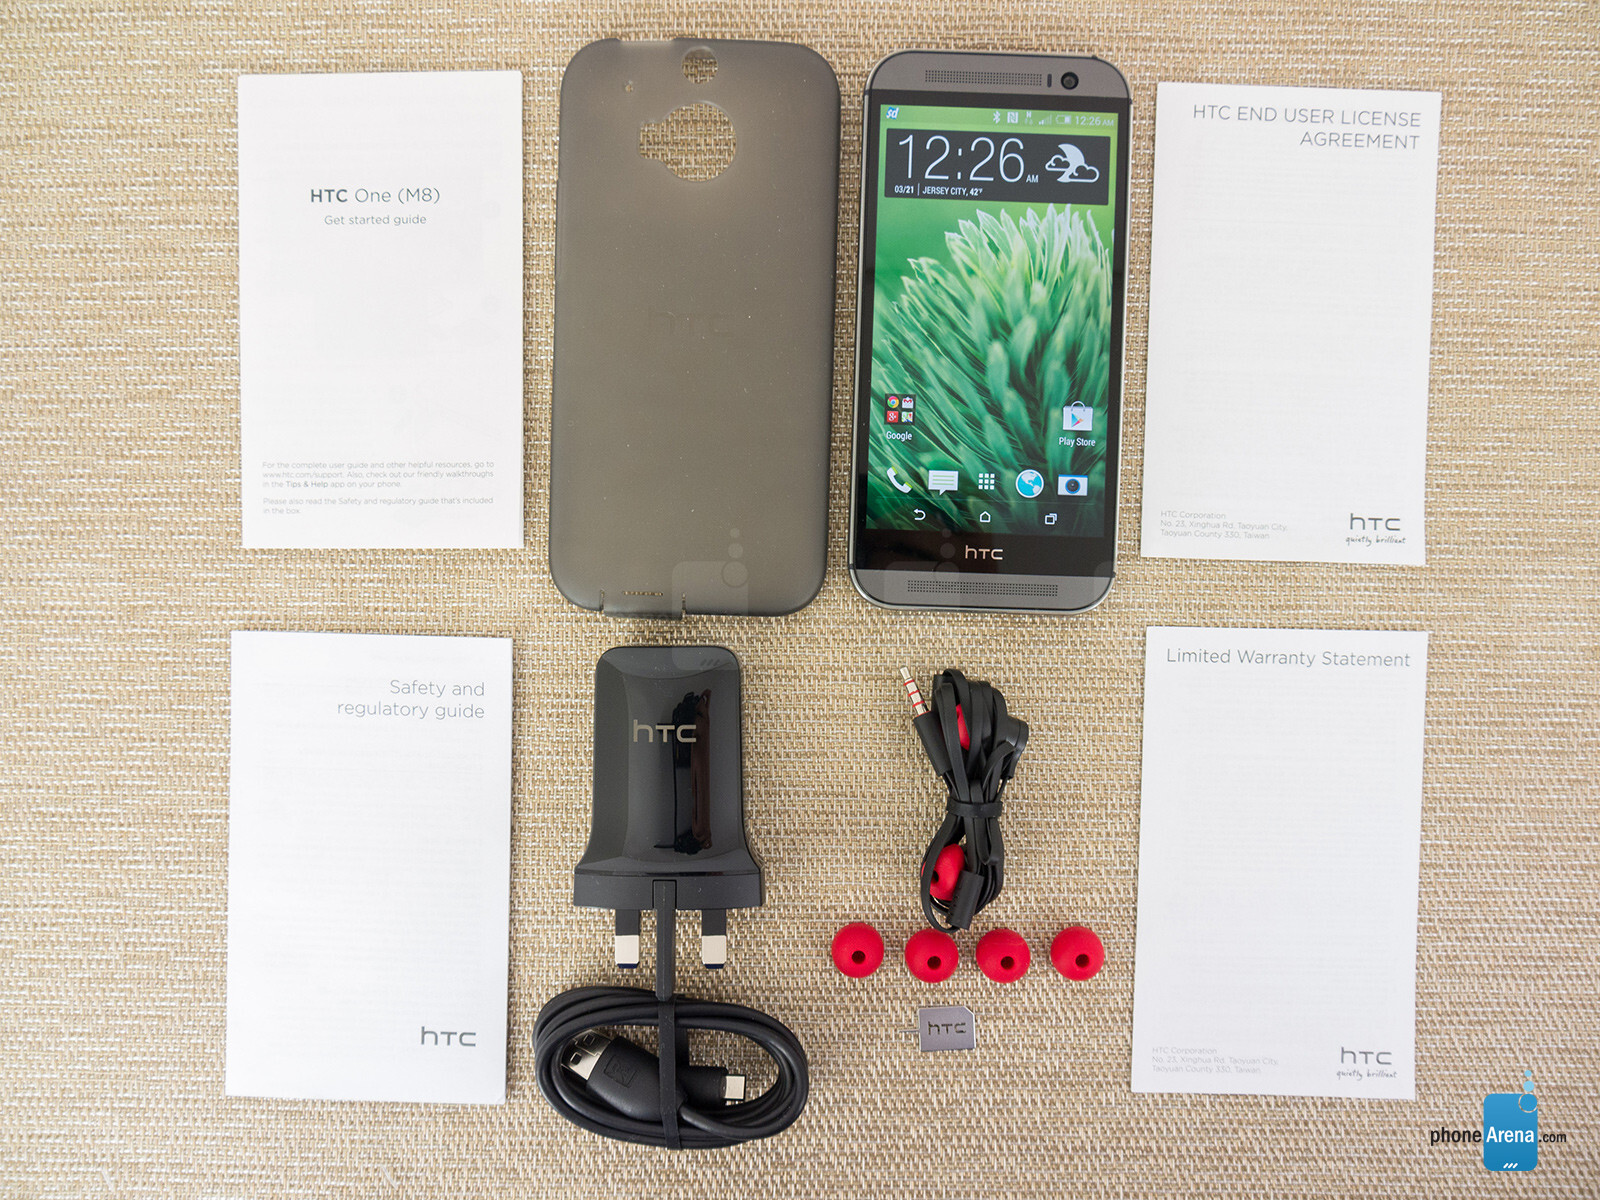 HTC One (M8) unboxing and hands-on | PhoneArena reviews